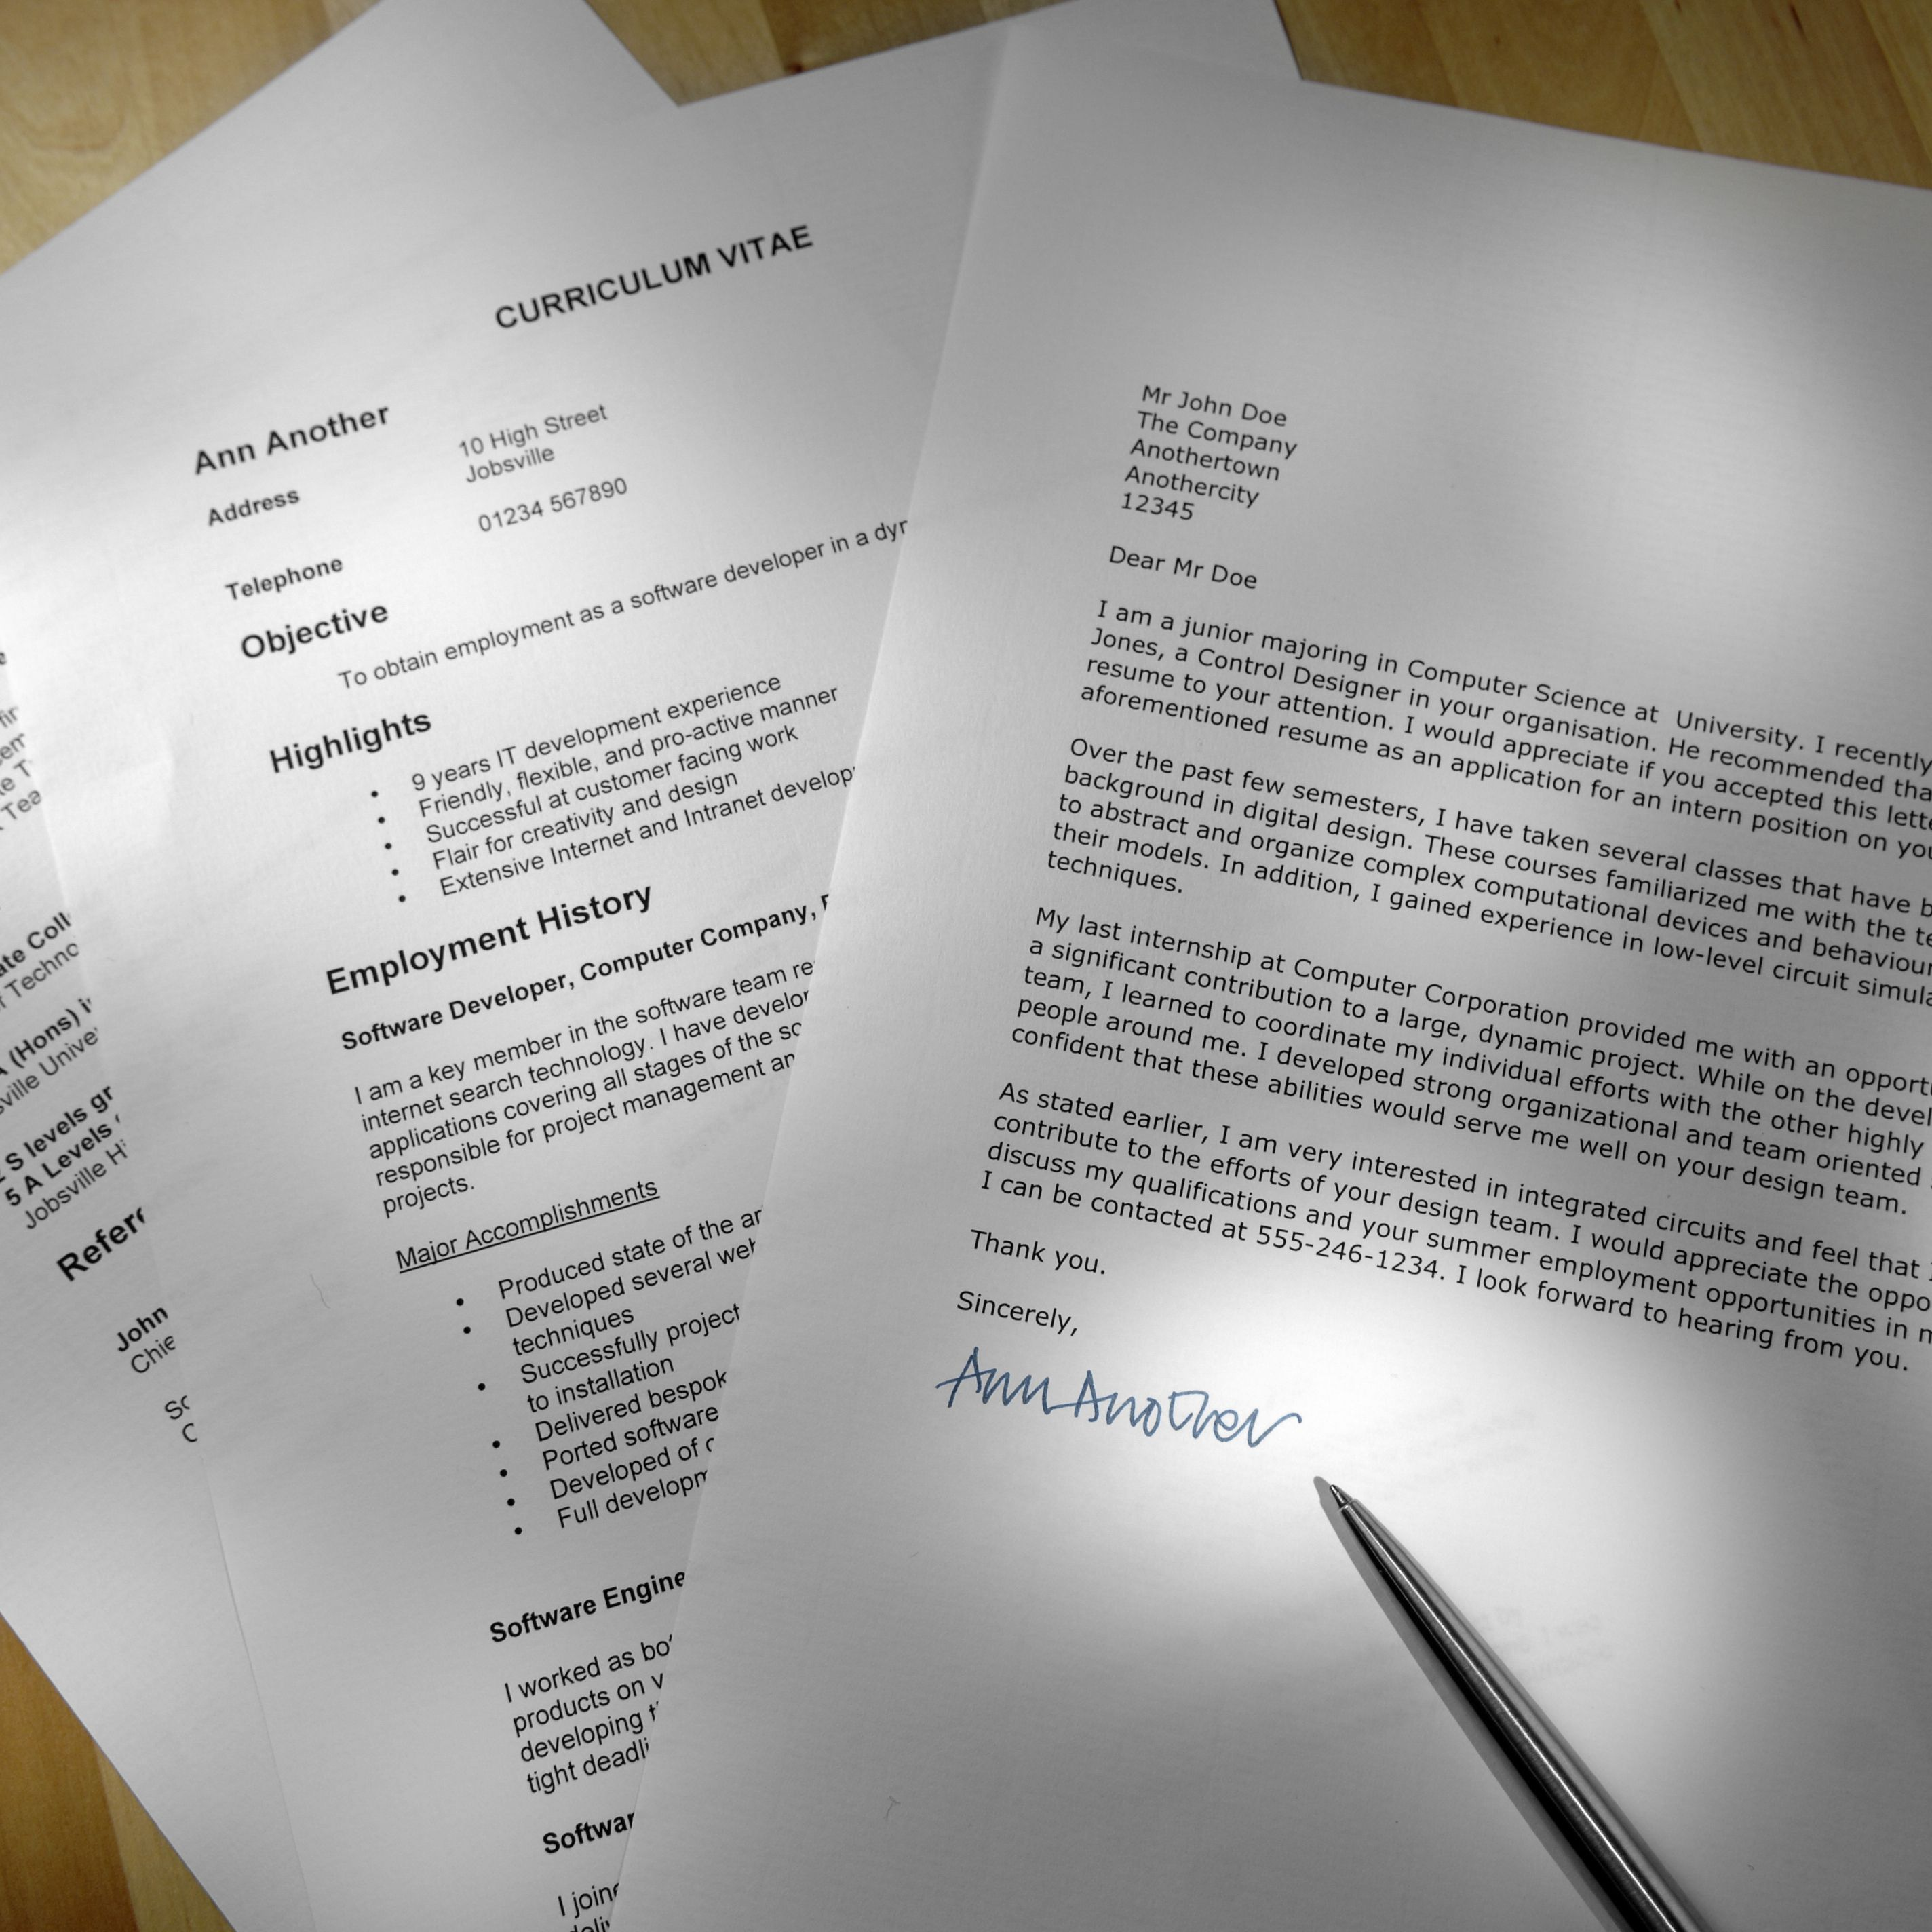 Free Resume And Cover Letter Templates from www.thebalancecareers.com